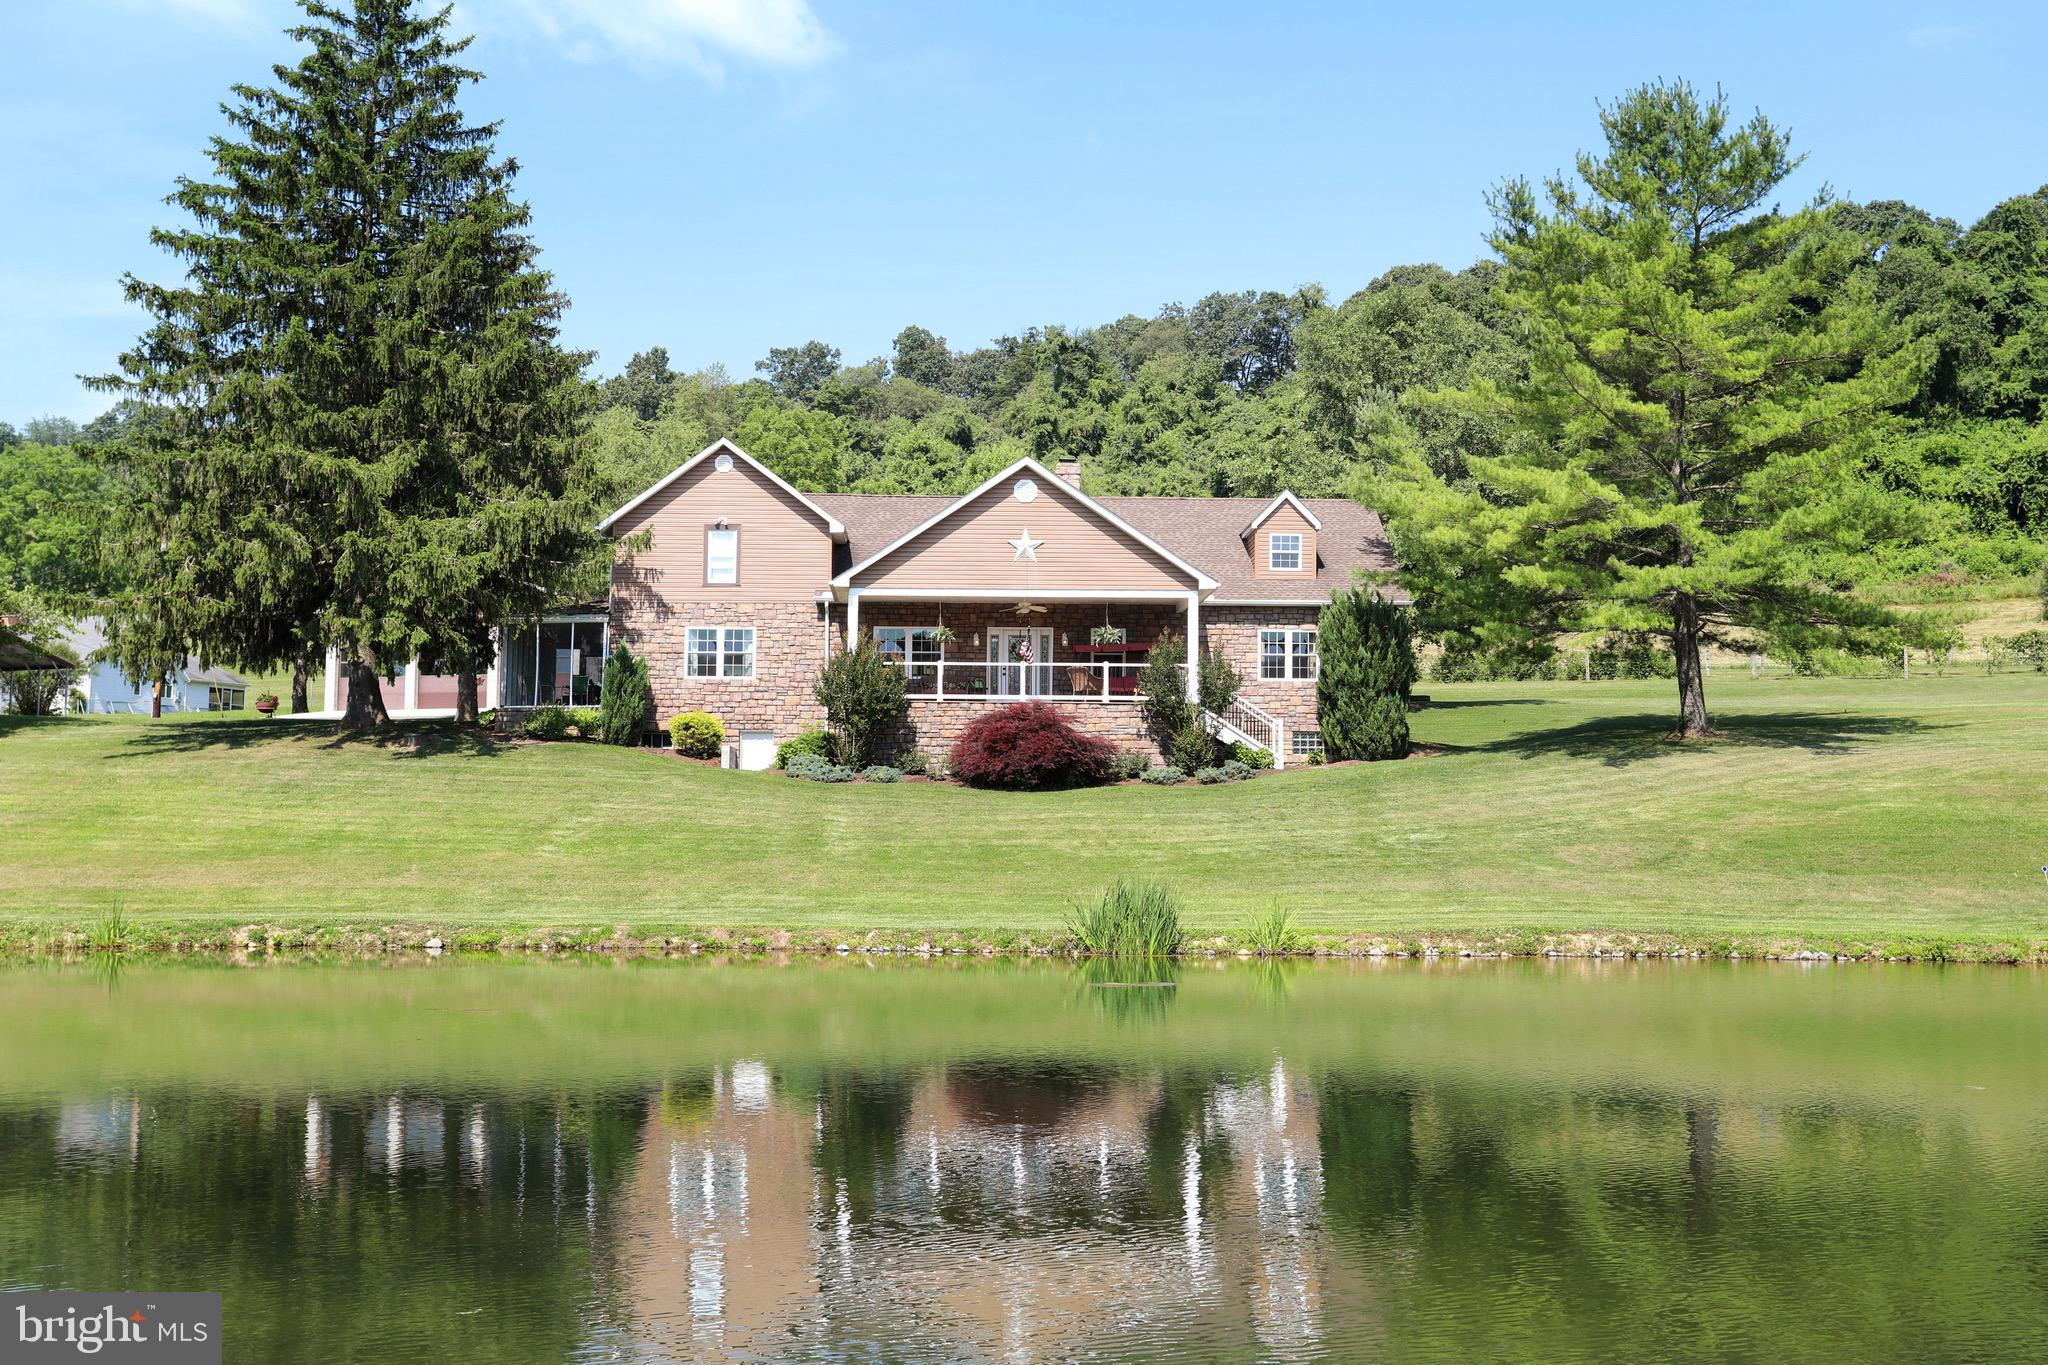 745 GREEN LANE ROAD, WARFORDSBURG, PA 17267